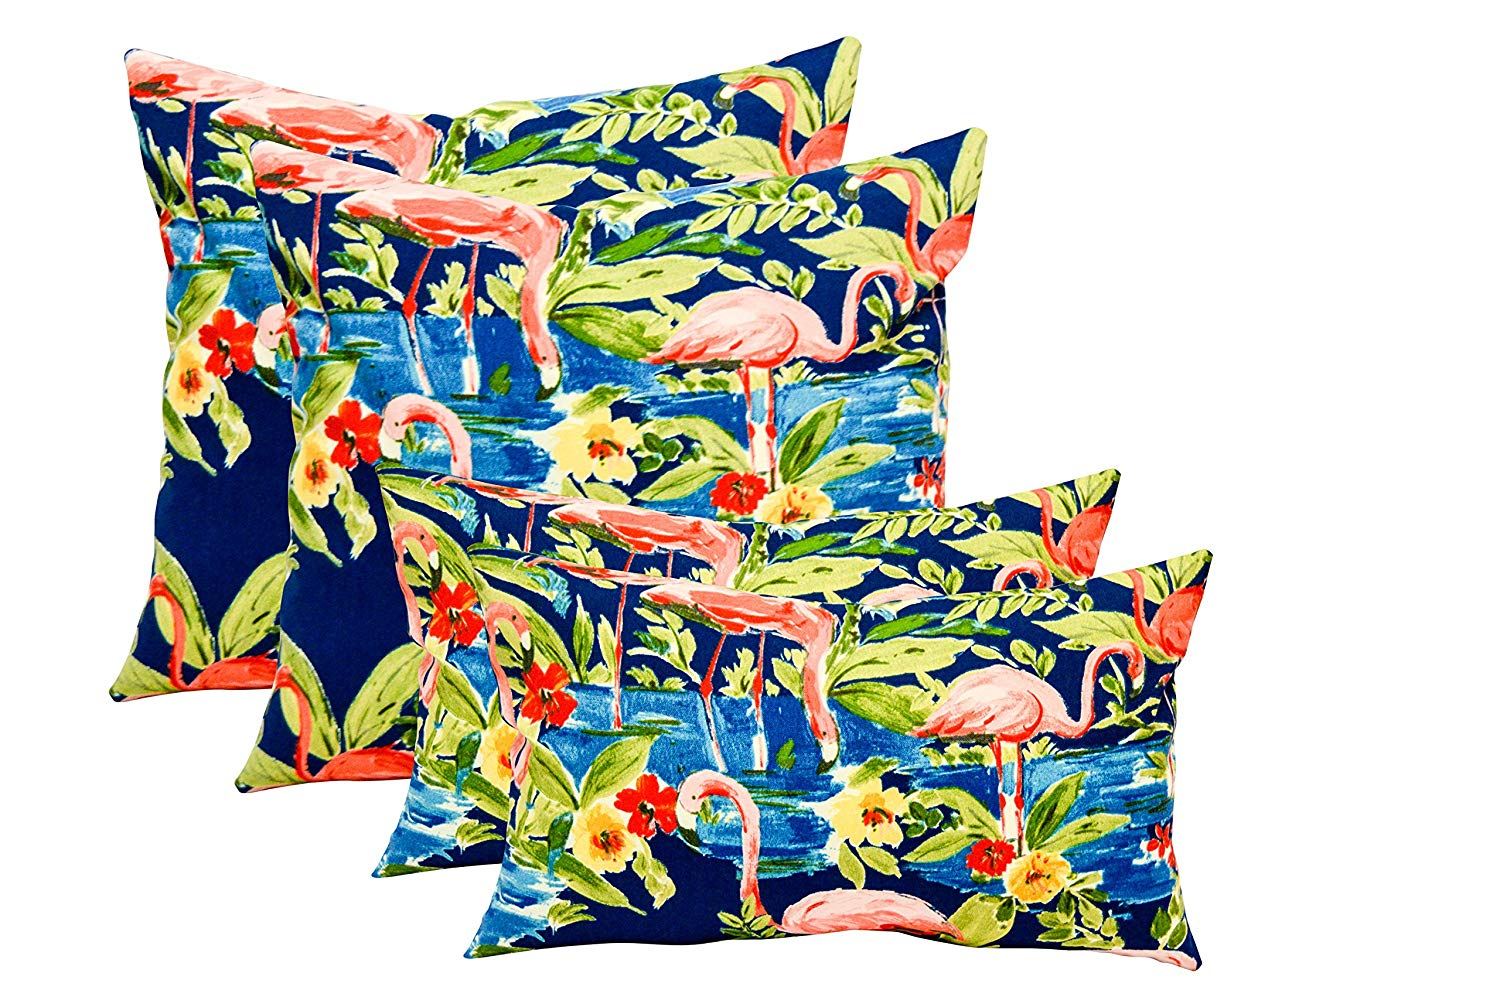 "Set of 4 Indoor / Outdoor Pillows - 17"" Square Throw Pillows & Rectangle / Lumbar Decorative Throw Pillows - Waverly Sun N Shade- Blue Pink Elegant Flamingo Flamingoing Flamingos"